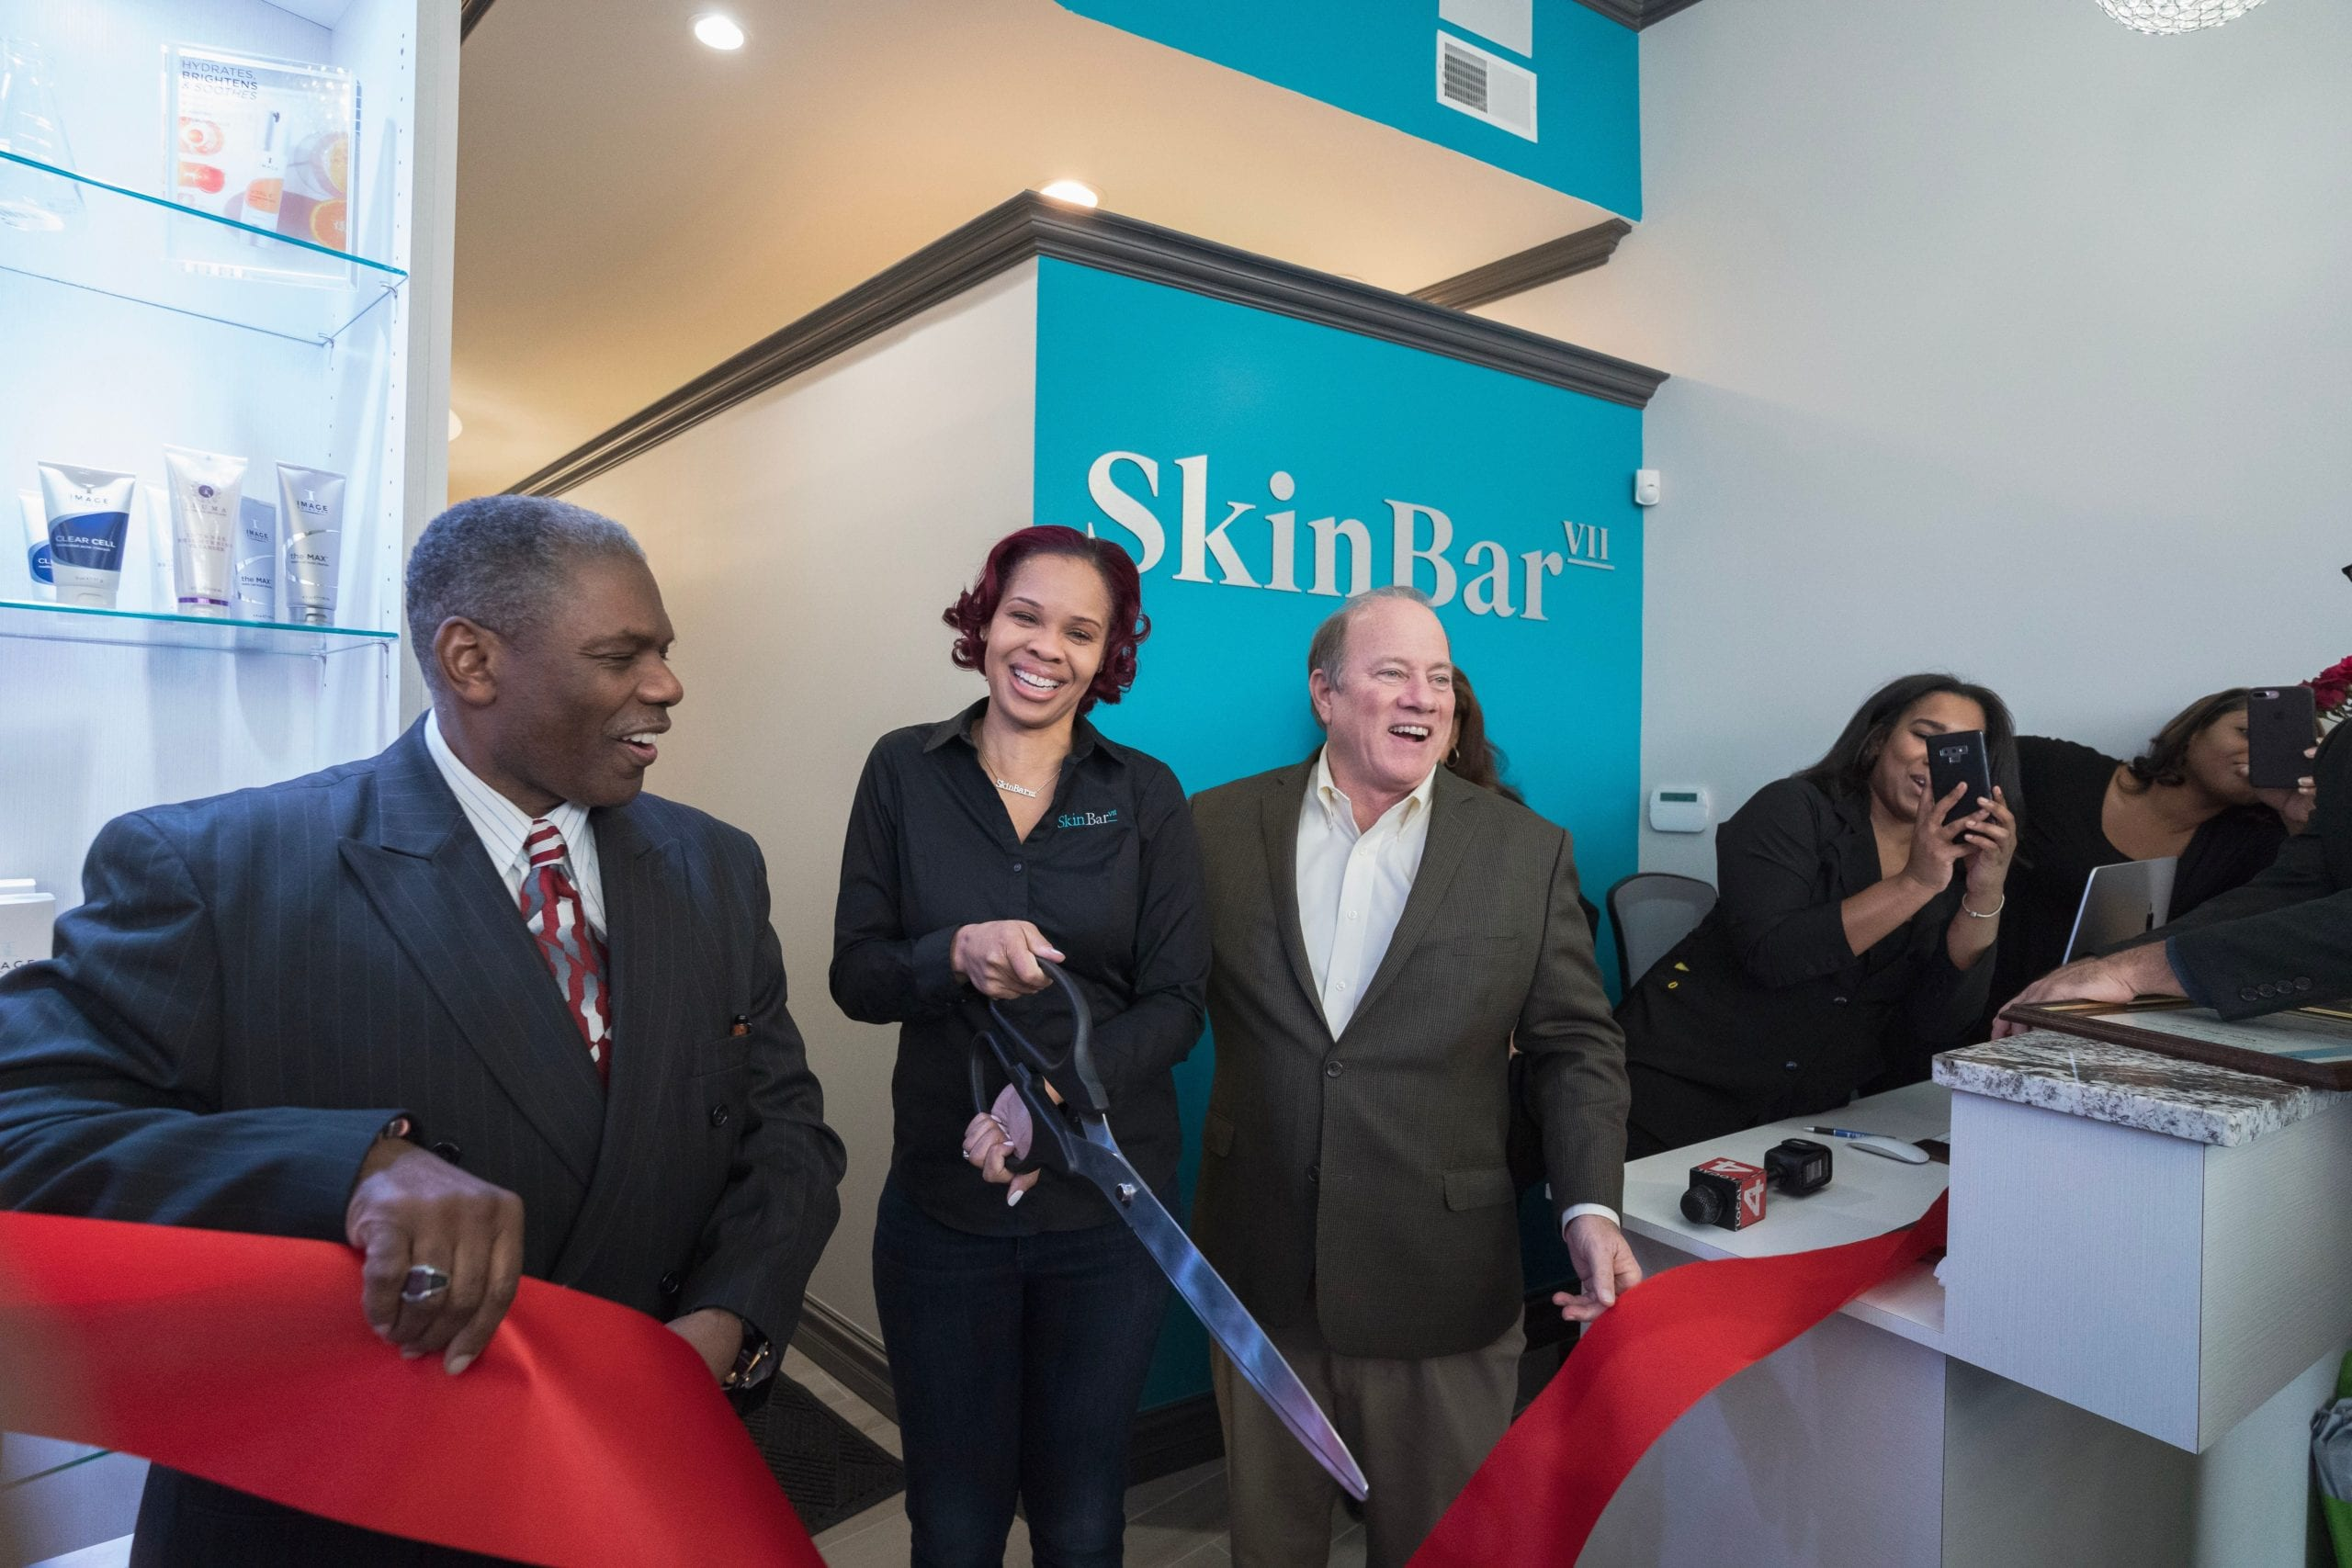 Sevyn Jones cuts ribbon at the grand opening ceremony for Skin Bar VII